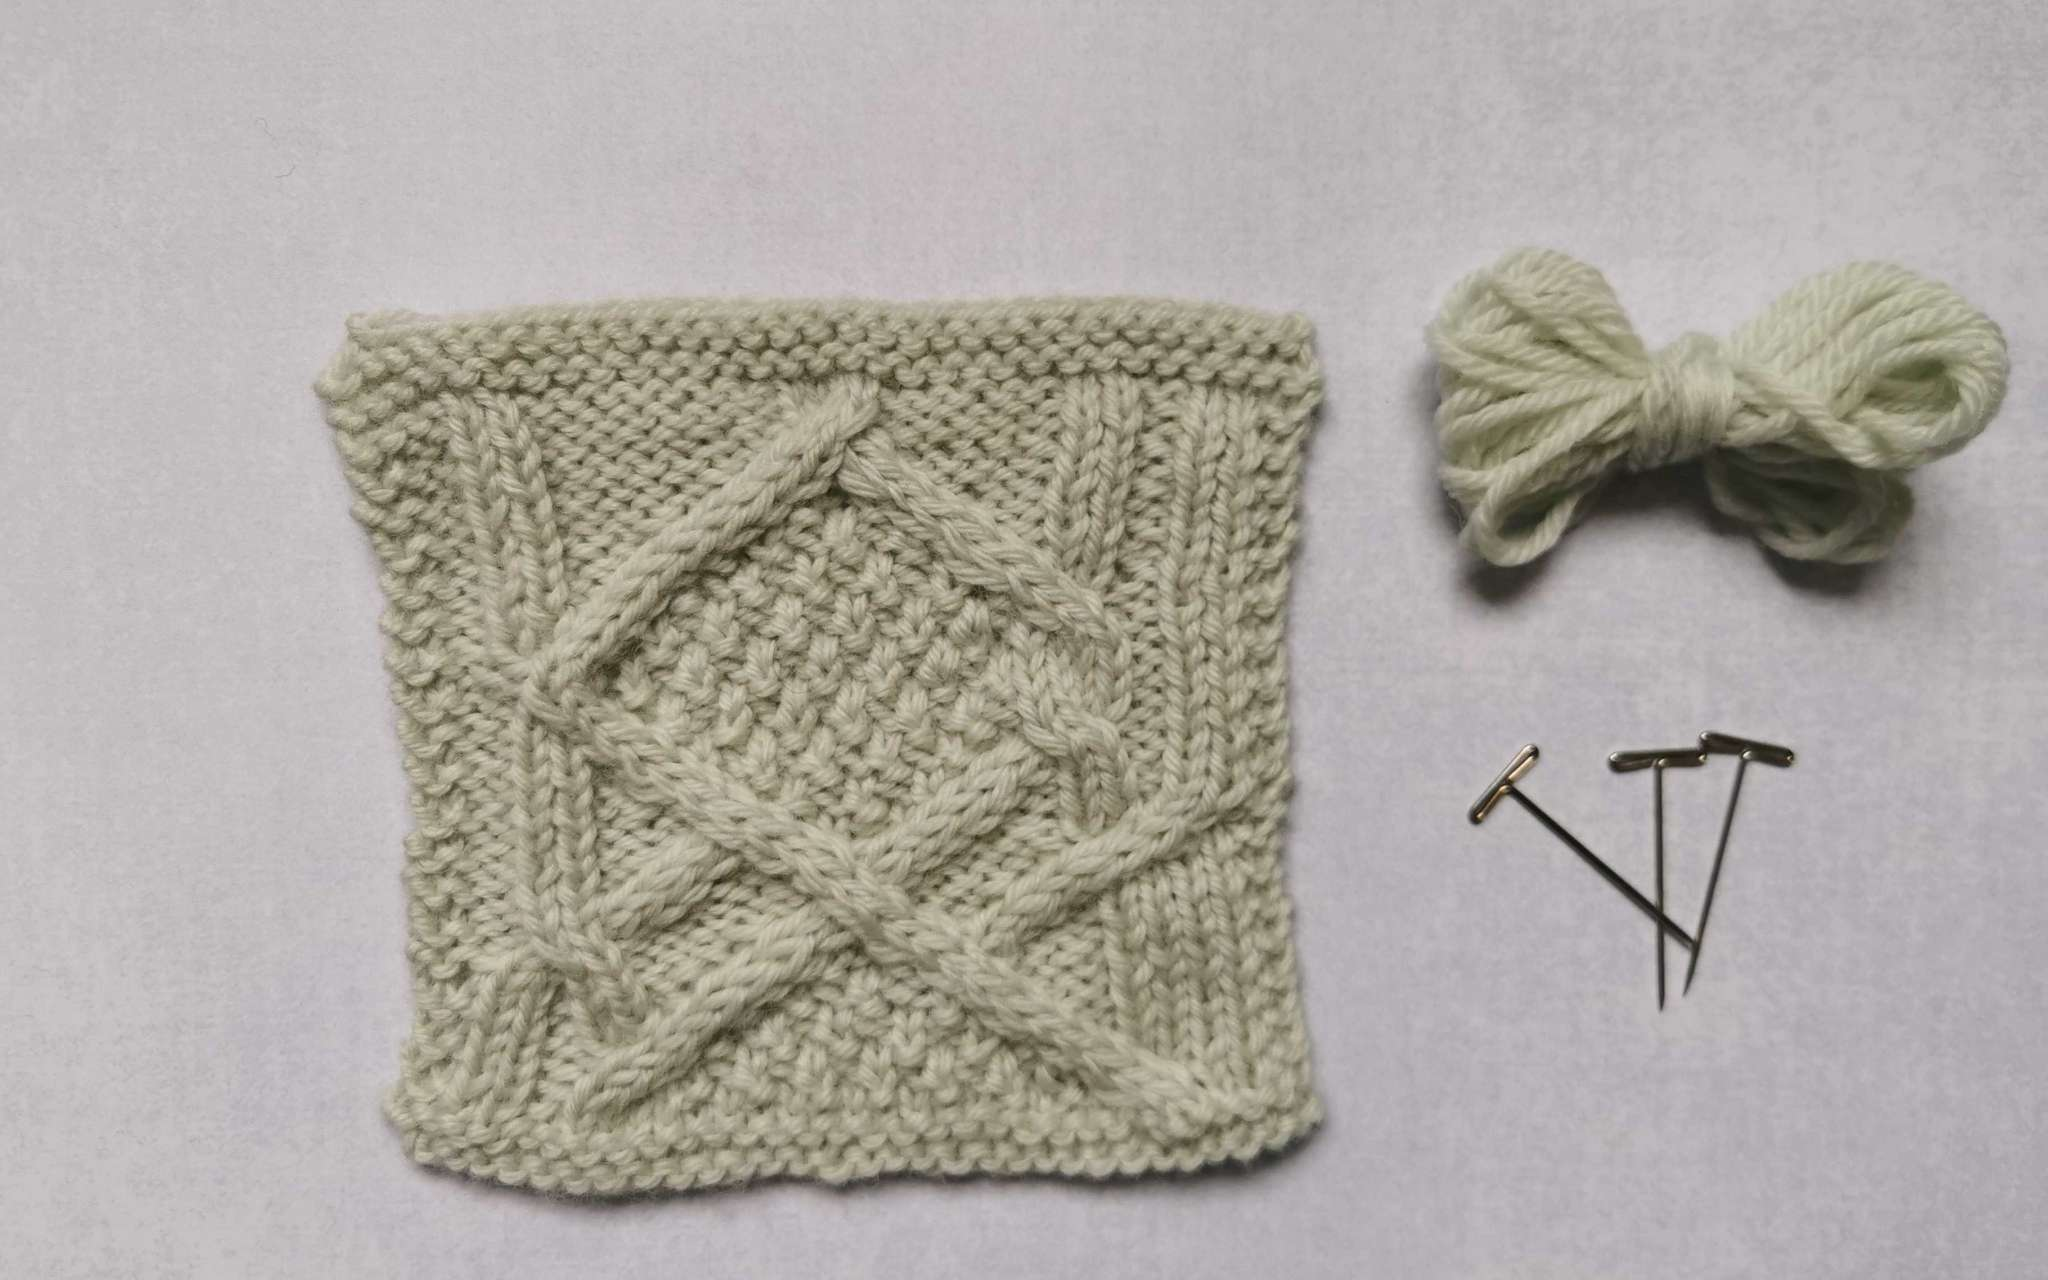 A square swatch of stocking stitch in pale cream, with some bundled up spare yarn and t-pins laying beside it to the right.